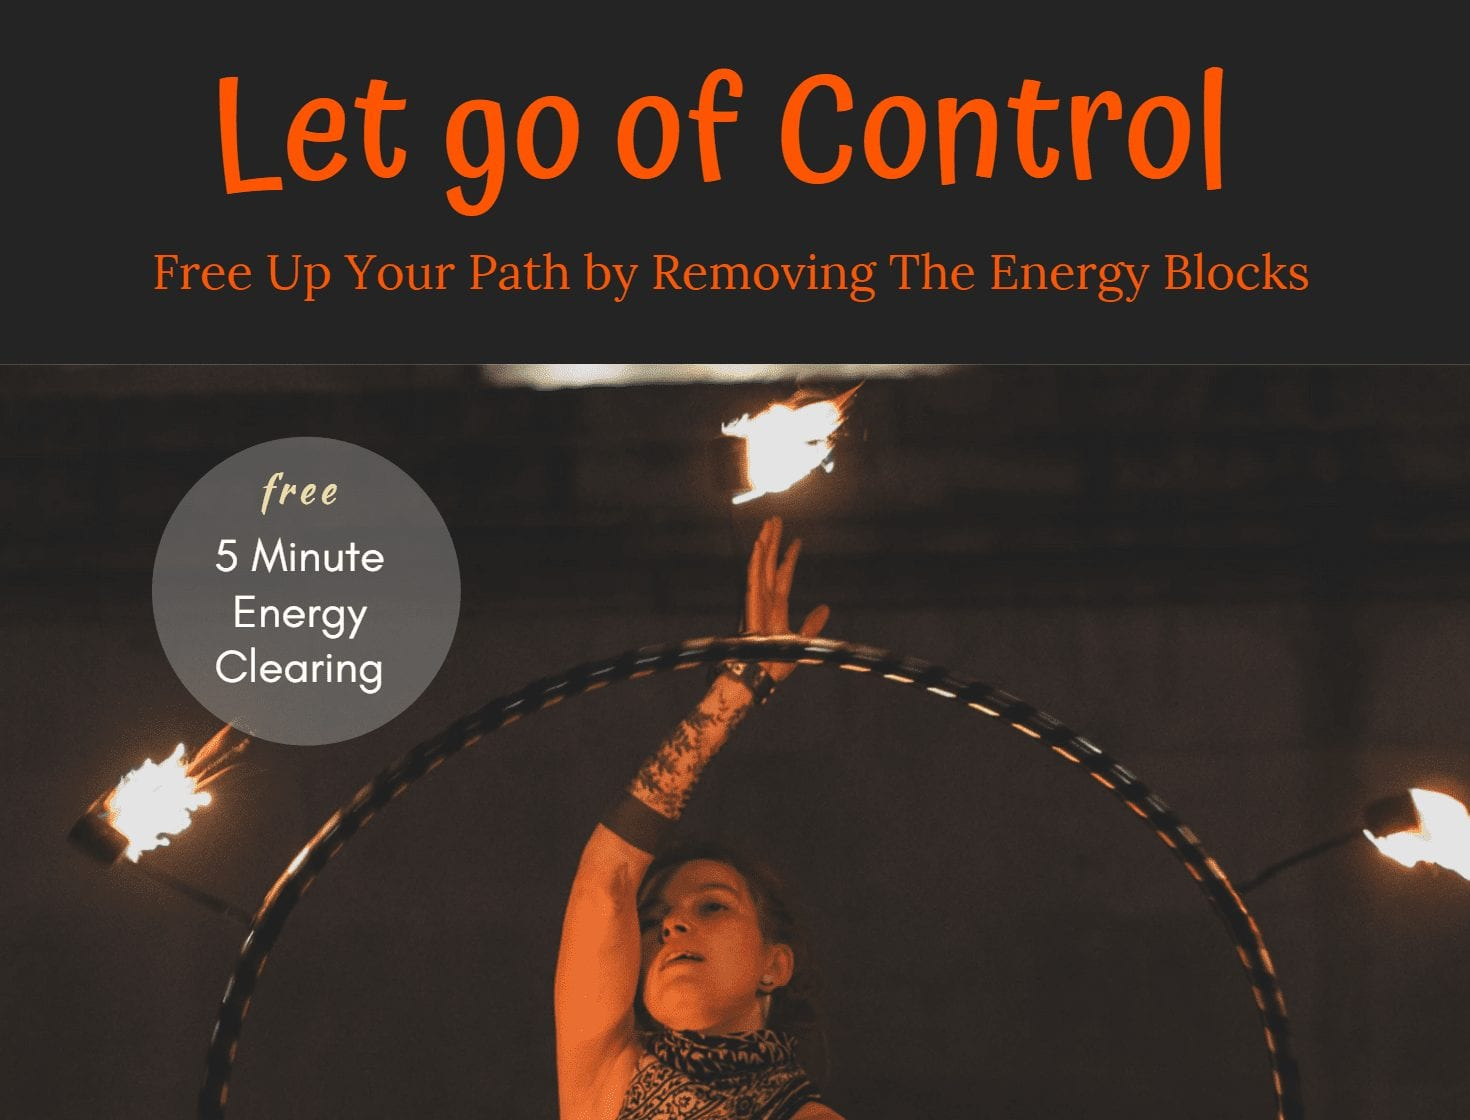 Energy Clearing to Let Go